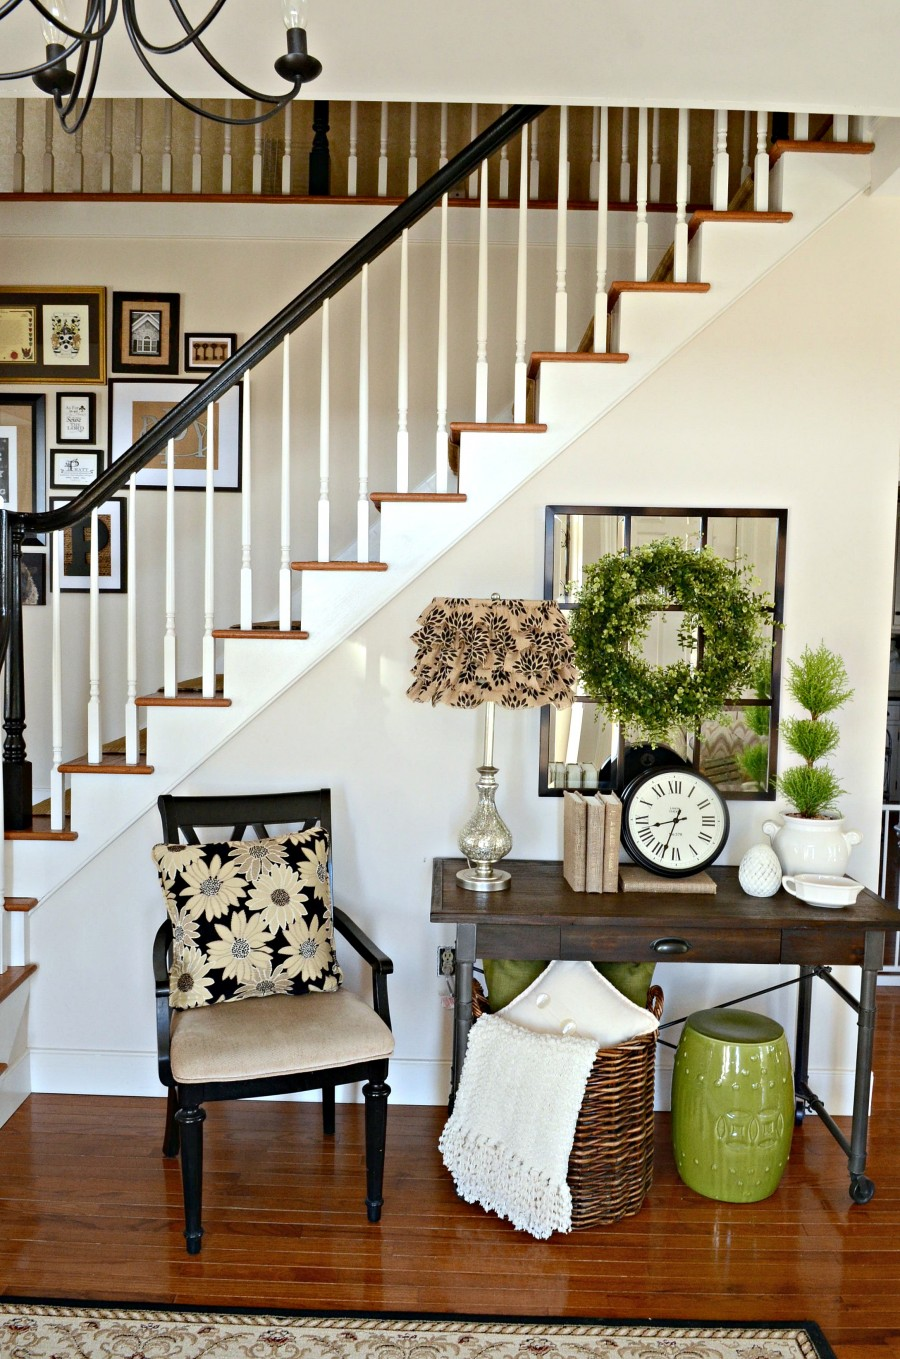 BOXWOOD WREATH IN THE FOYER-wide view of foyer-stonegableblog.com